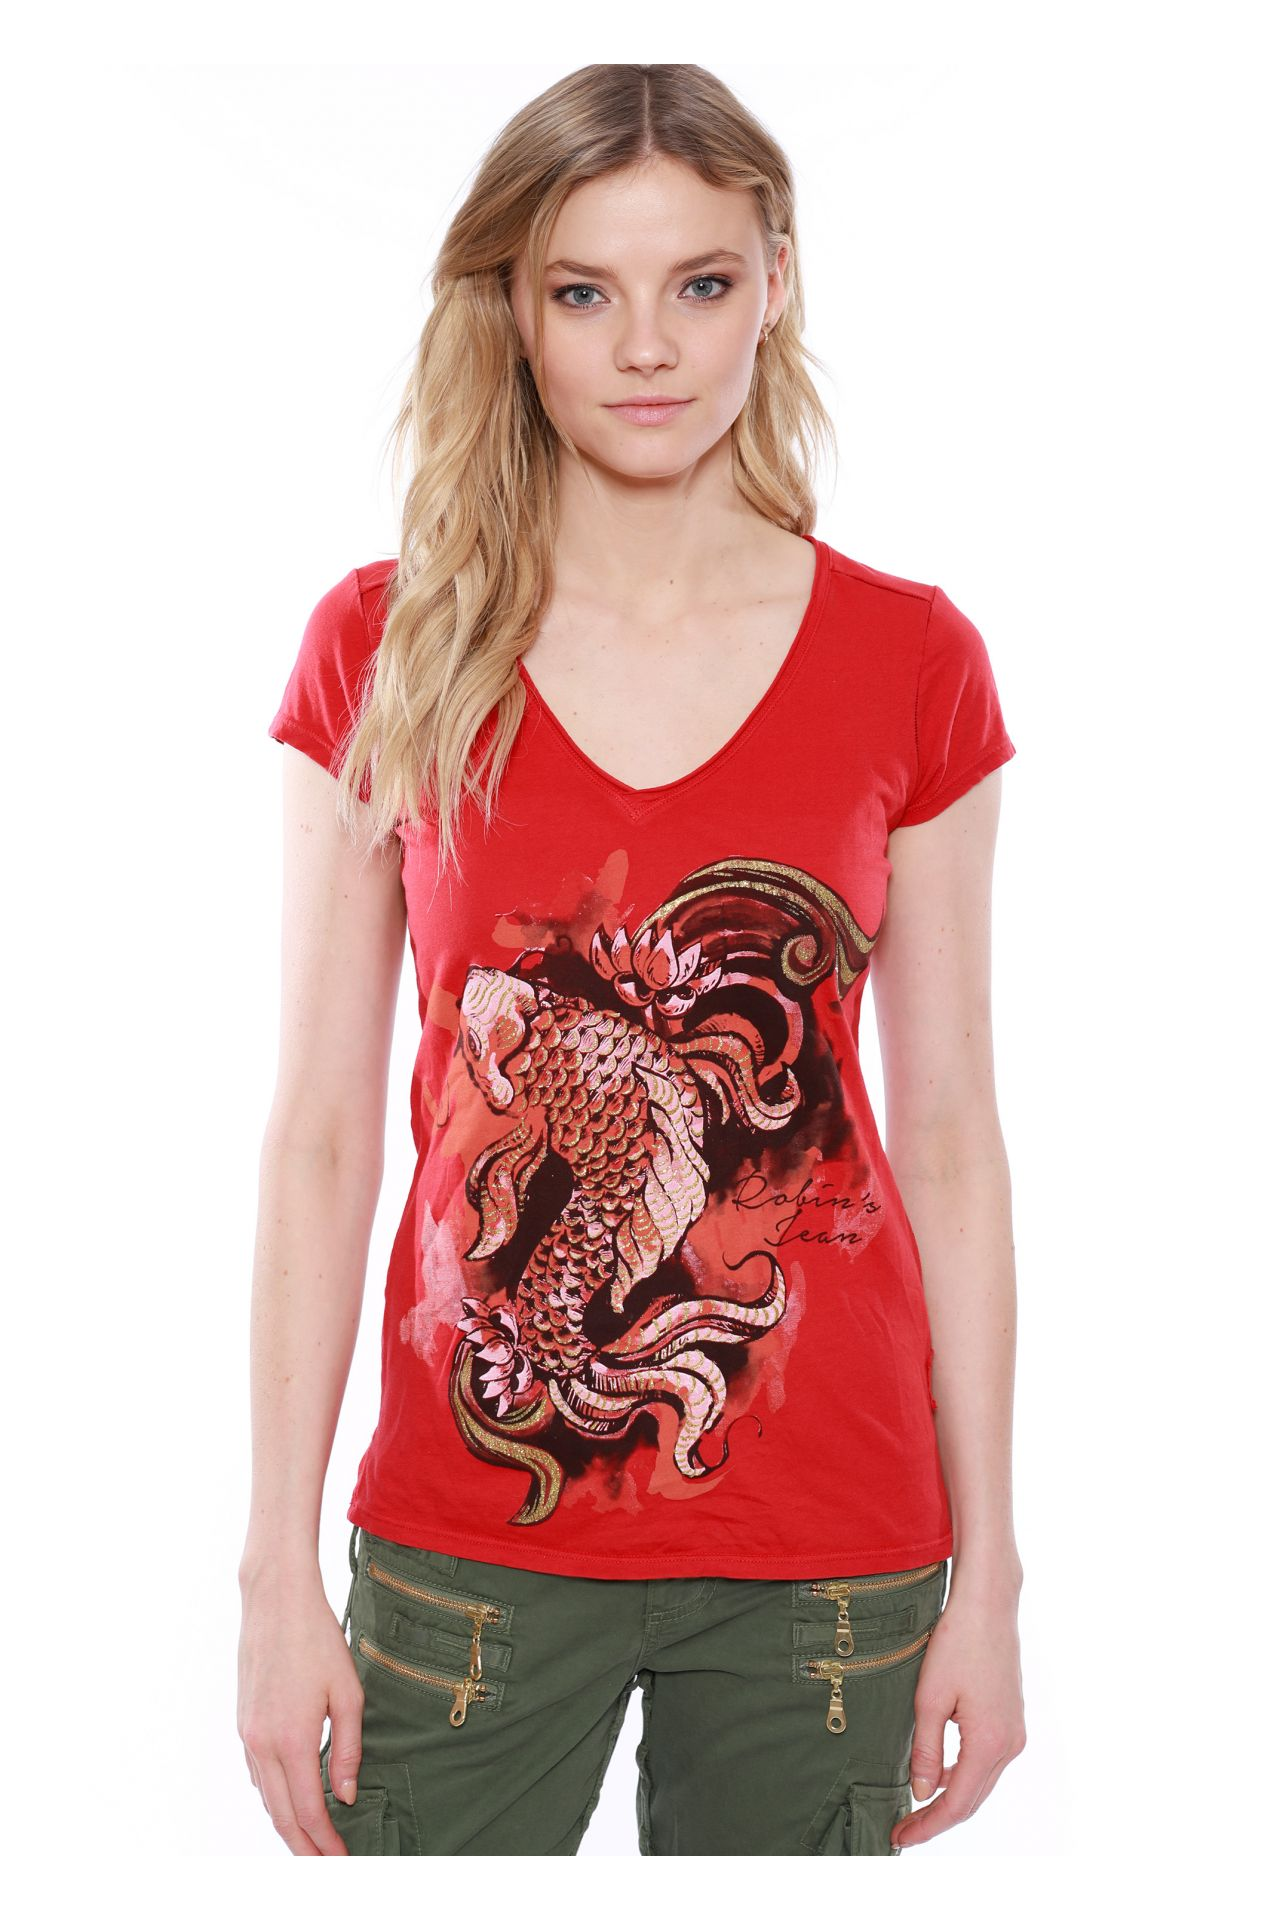 KOI TEE IN RED